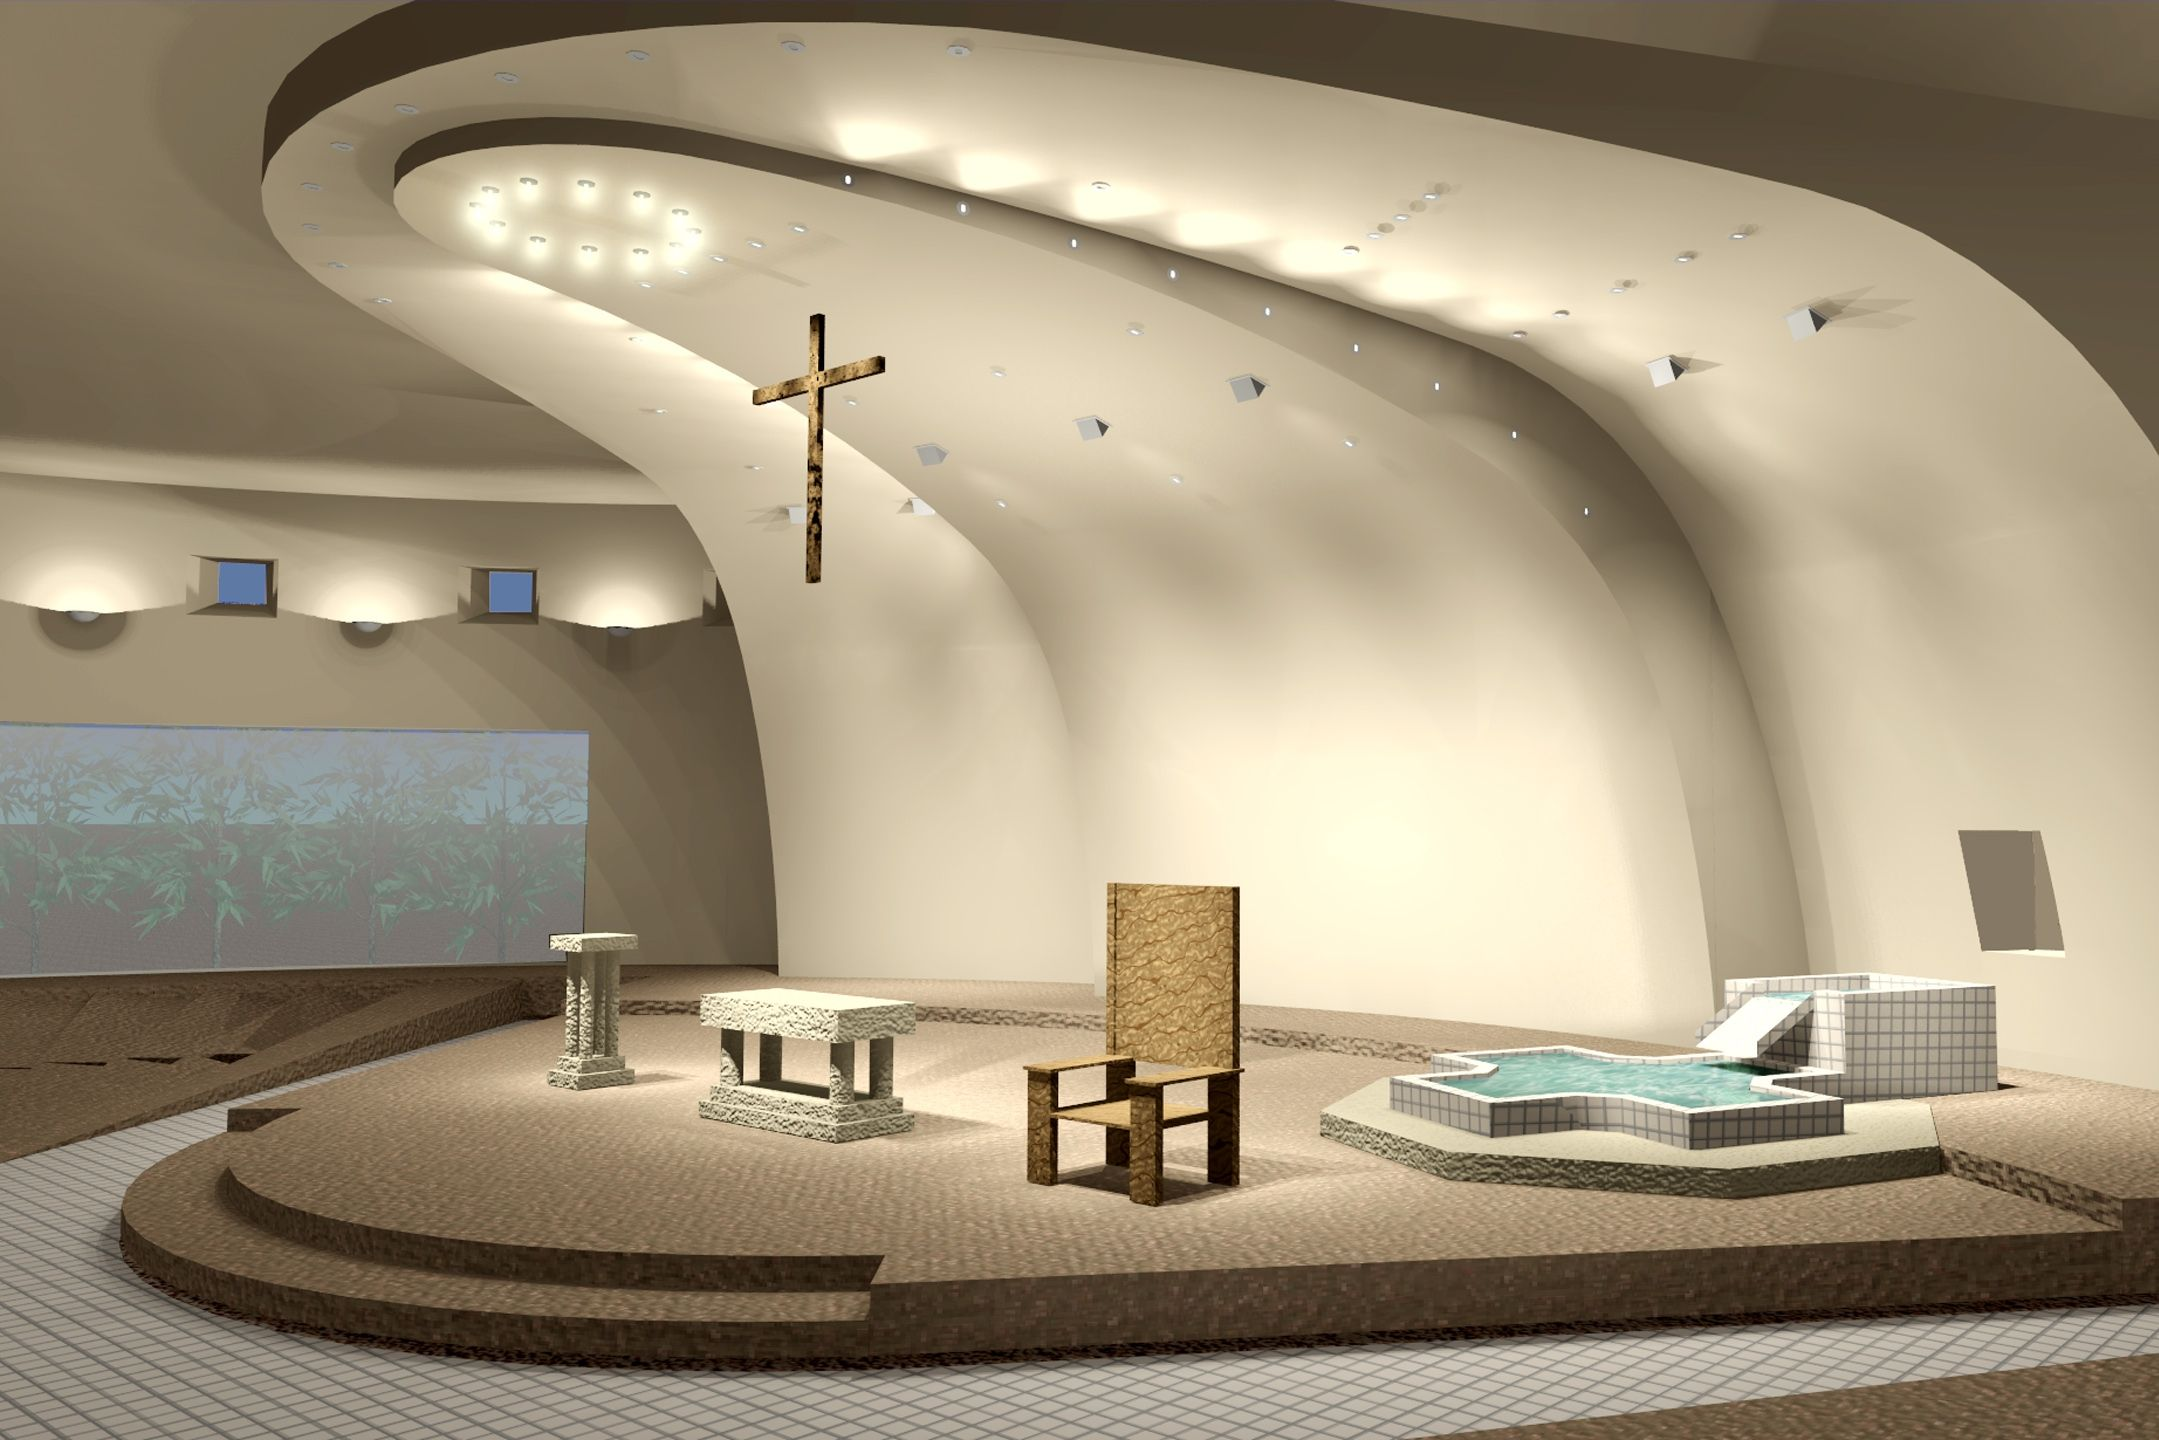 Church Interior Design Ideas interior design preschool color schemes first baptist church education addition enterprise al Cute Modern Church Interior Design Along With Hardwoord Amp Tile